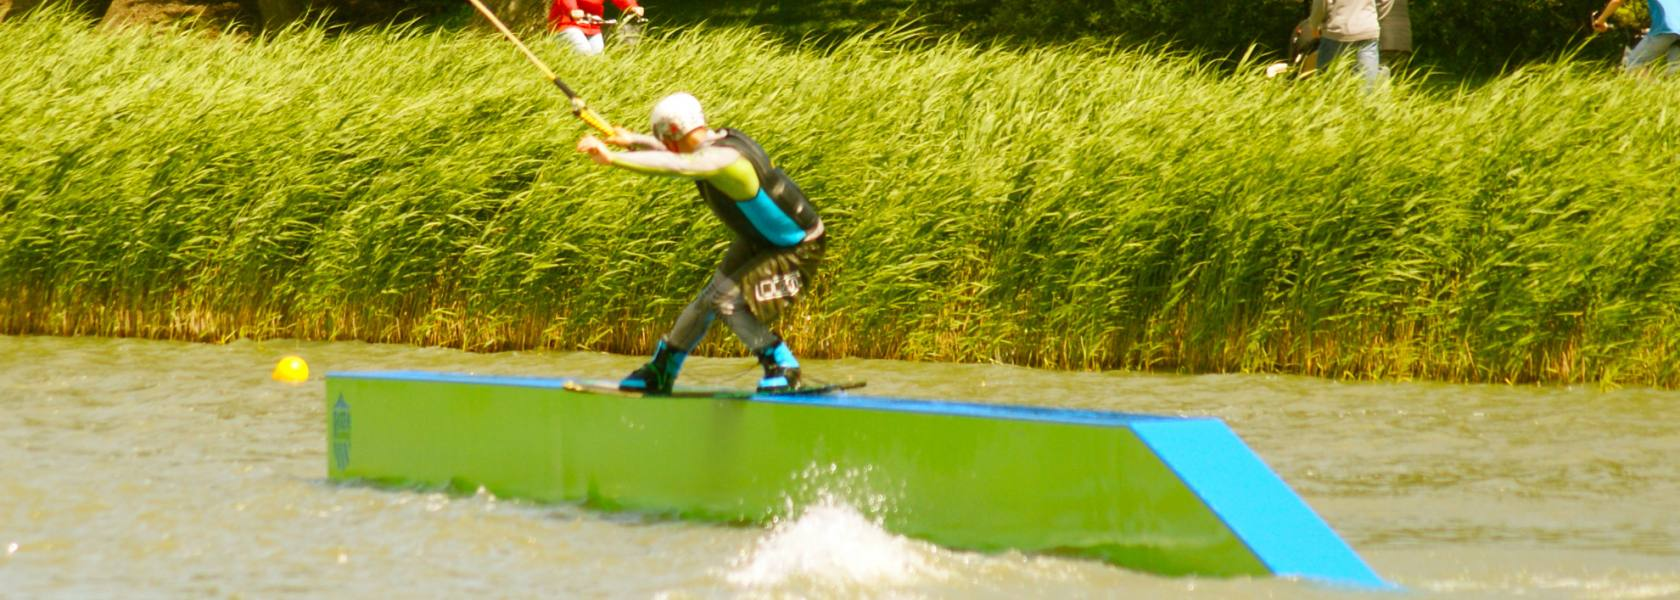 WakeGarden in Otterndorf, © Otterndorf Marketing GmbH